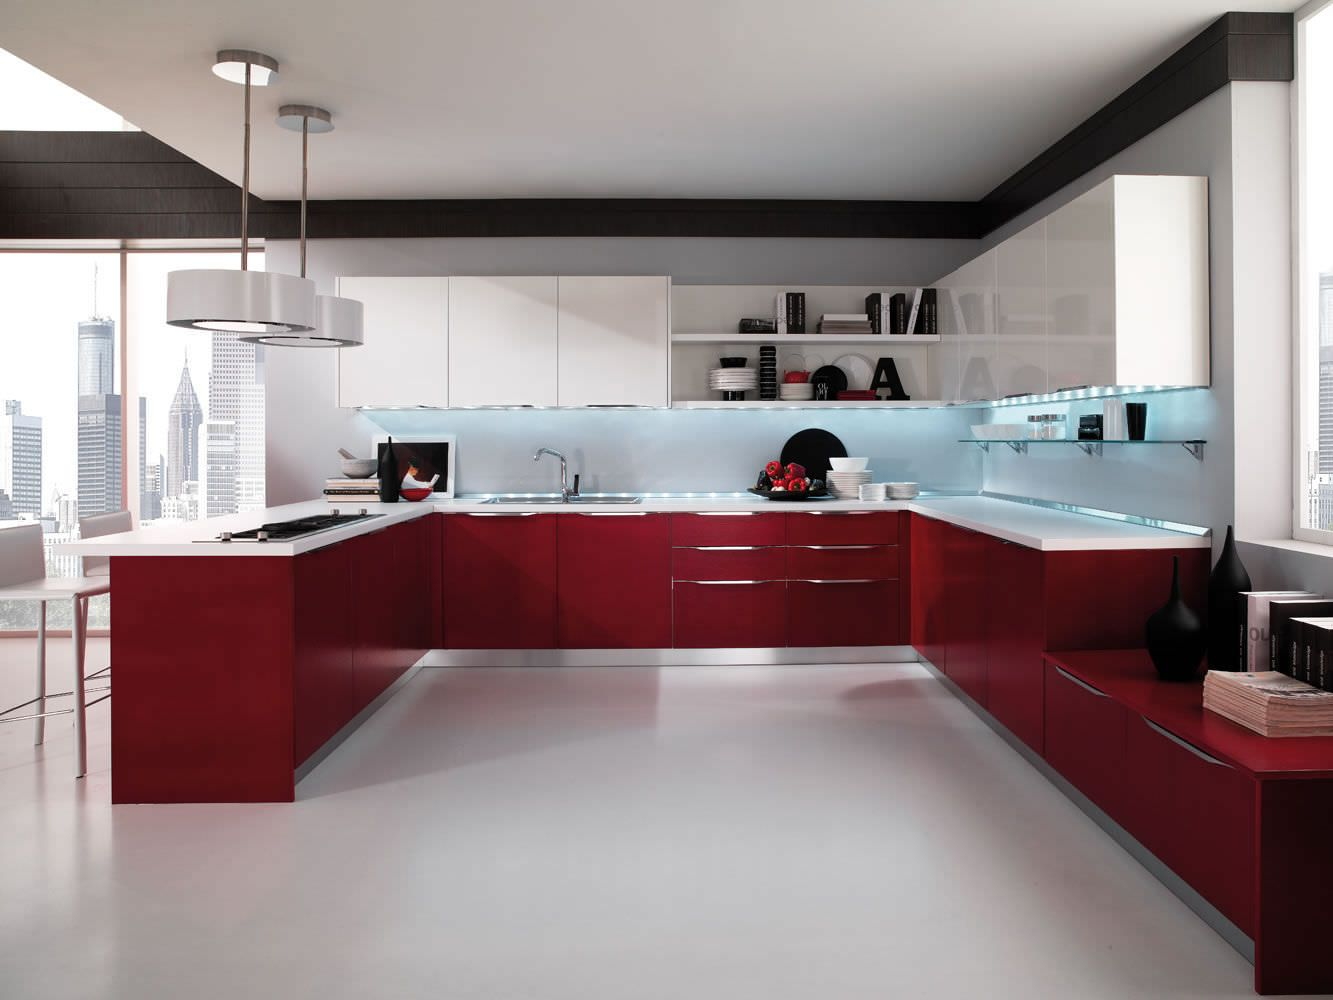 High gloss kitchens contemporary kitchen lacquered high gloss airone torchetti cucine ipc427 - high  gloss KVUGKQV